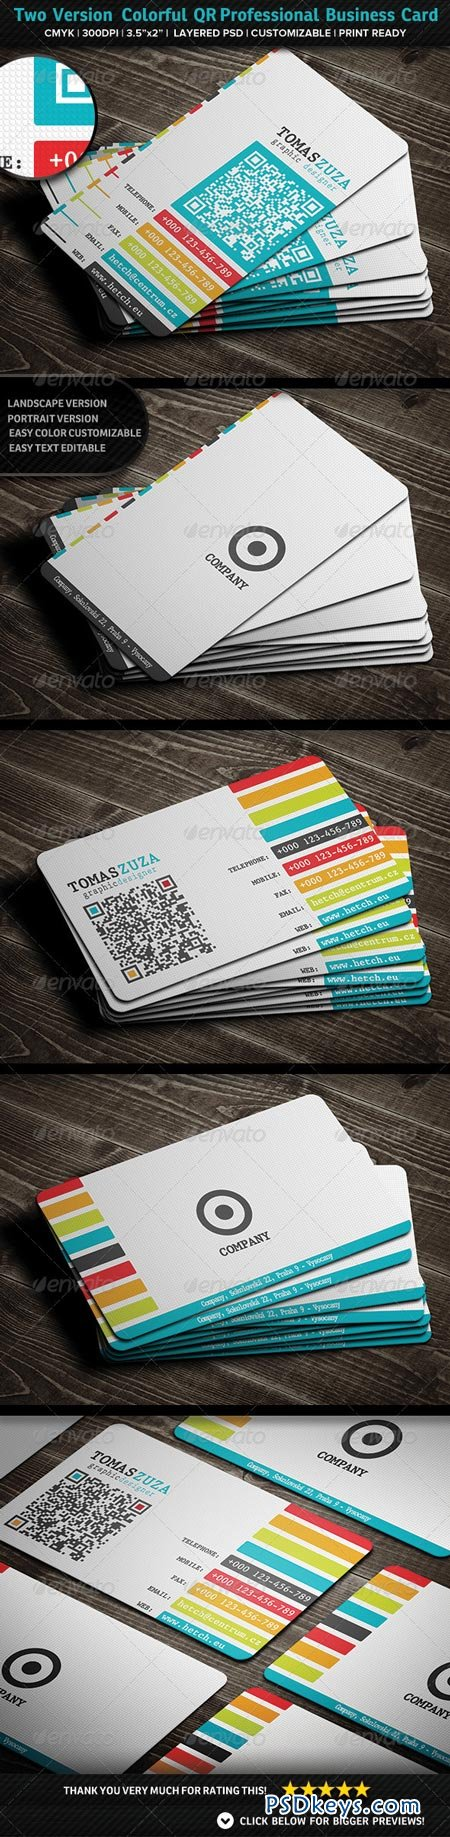 Two Version Colorful QR Professional Business 2883814